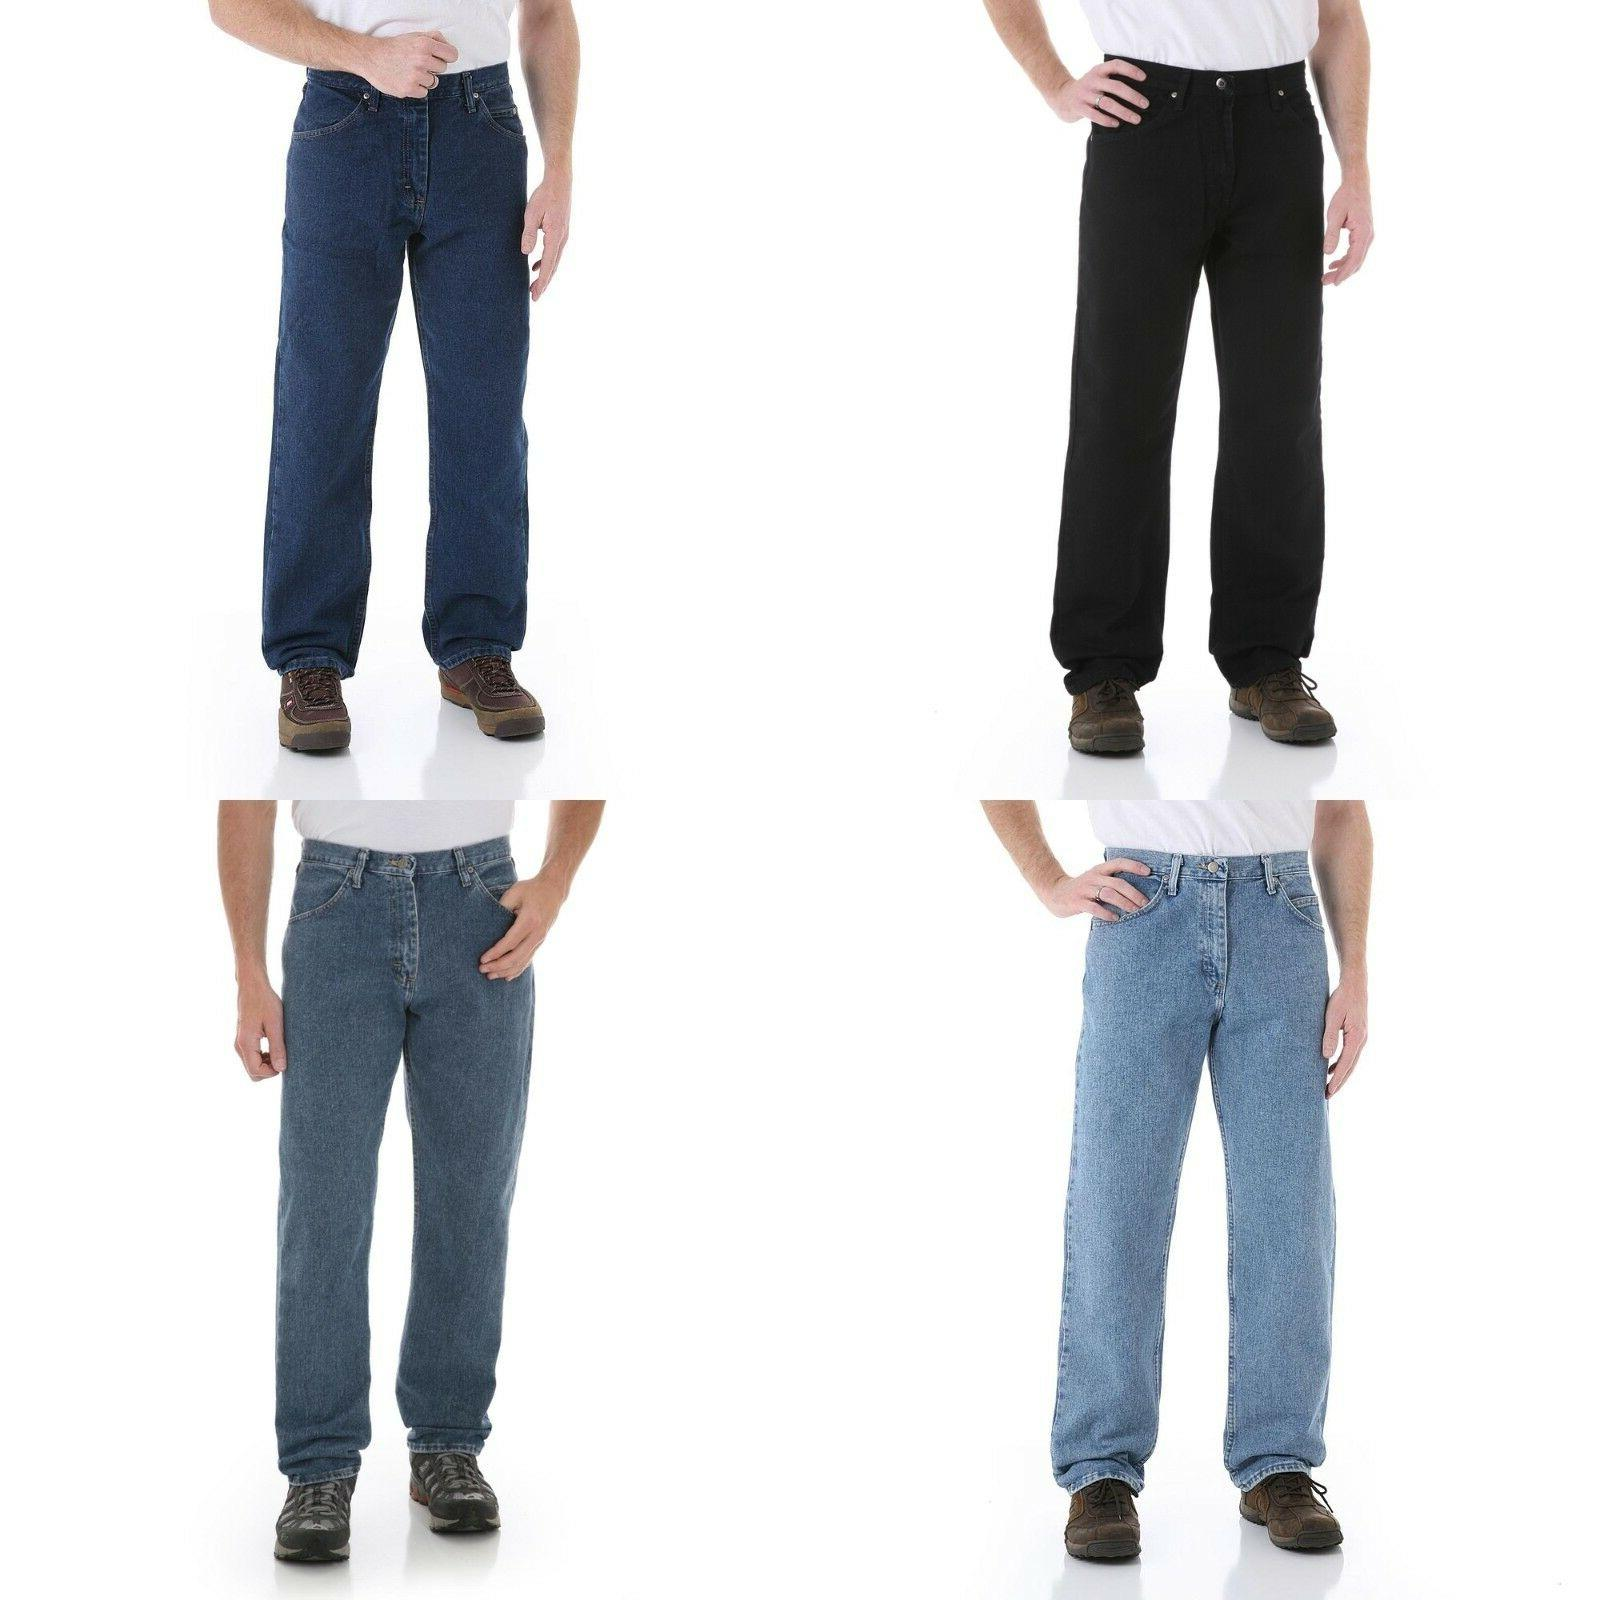 New Wrangler Relaxed Jeans All Men`s Colors Available